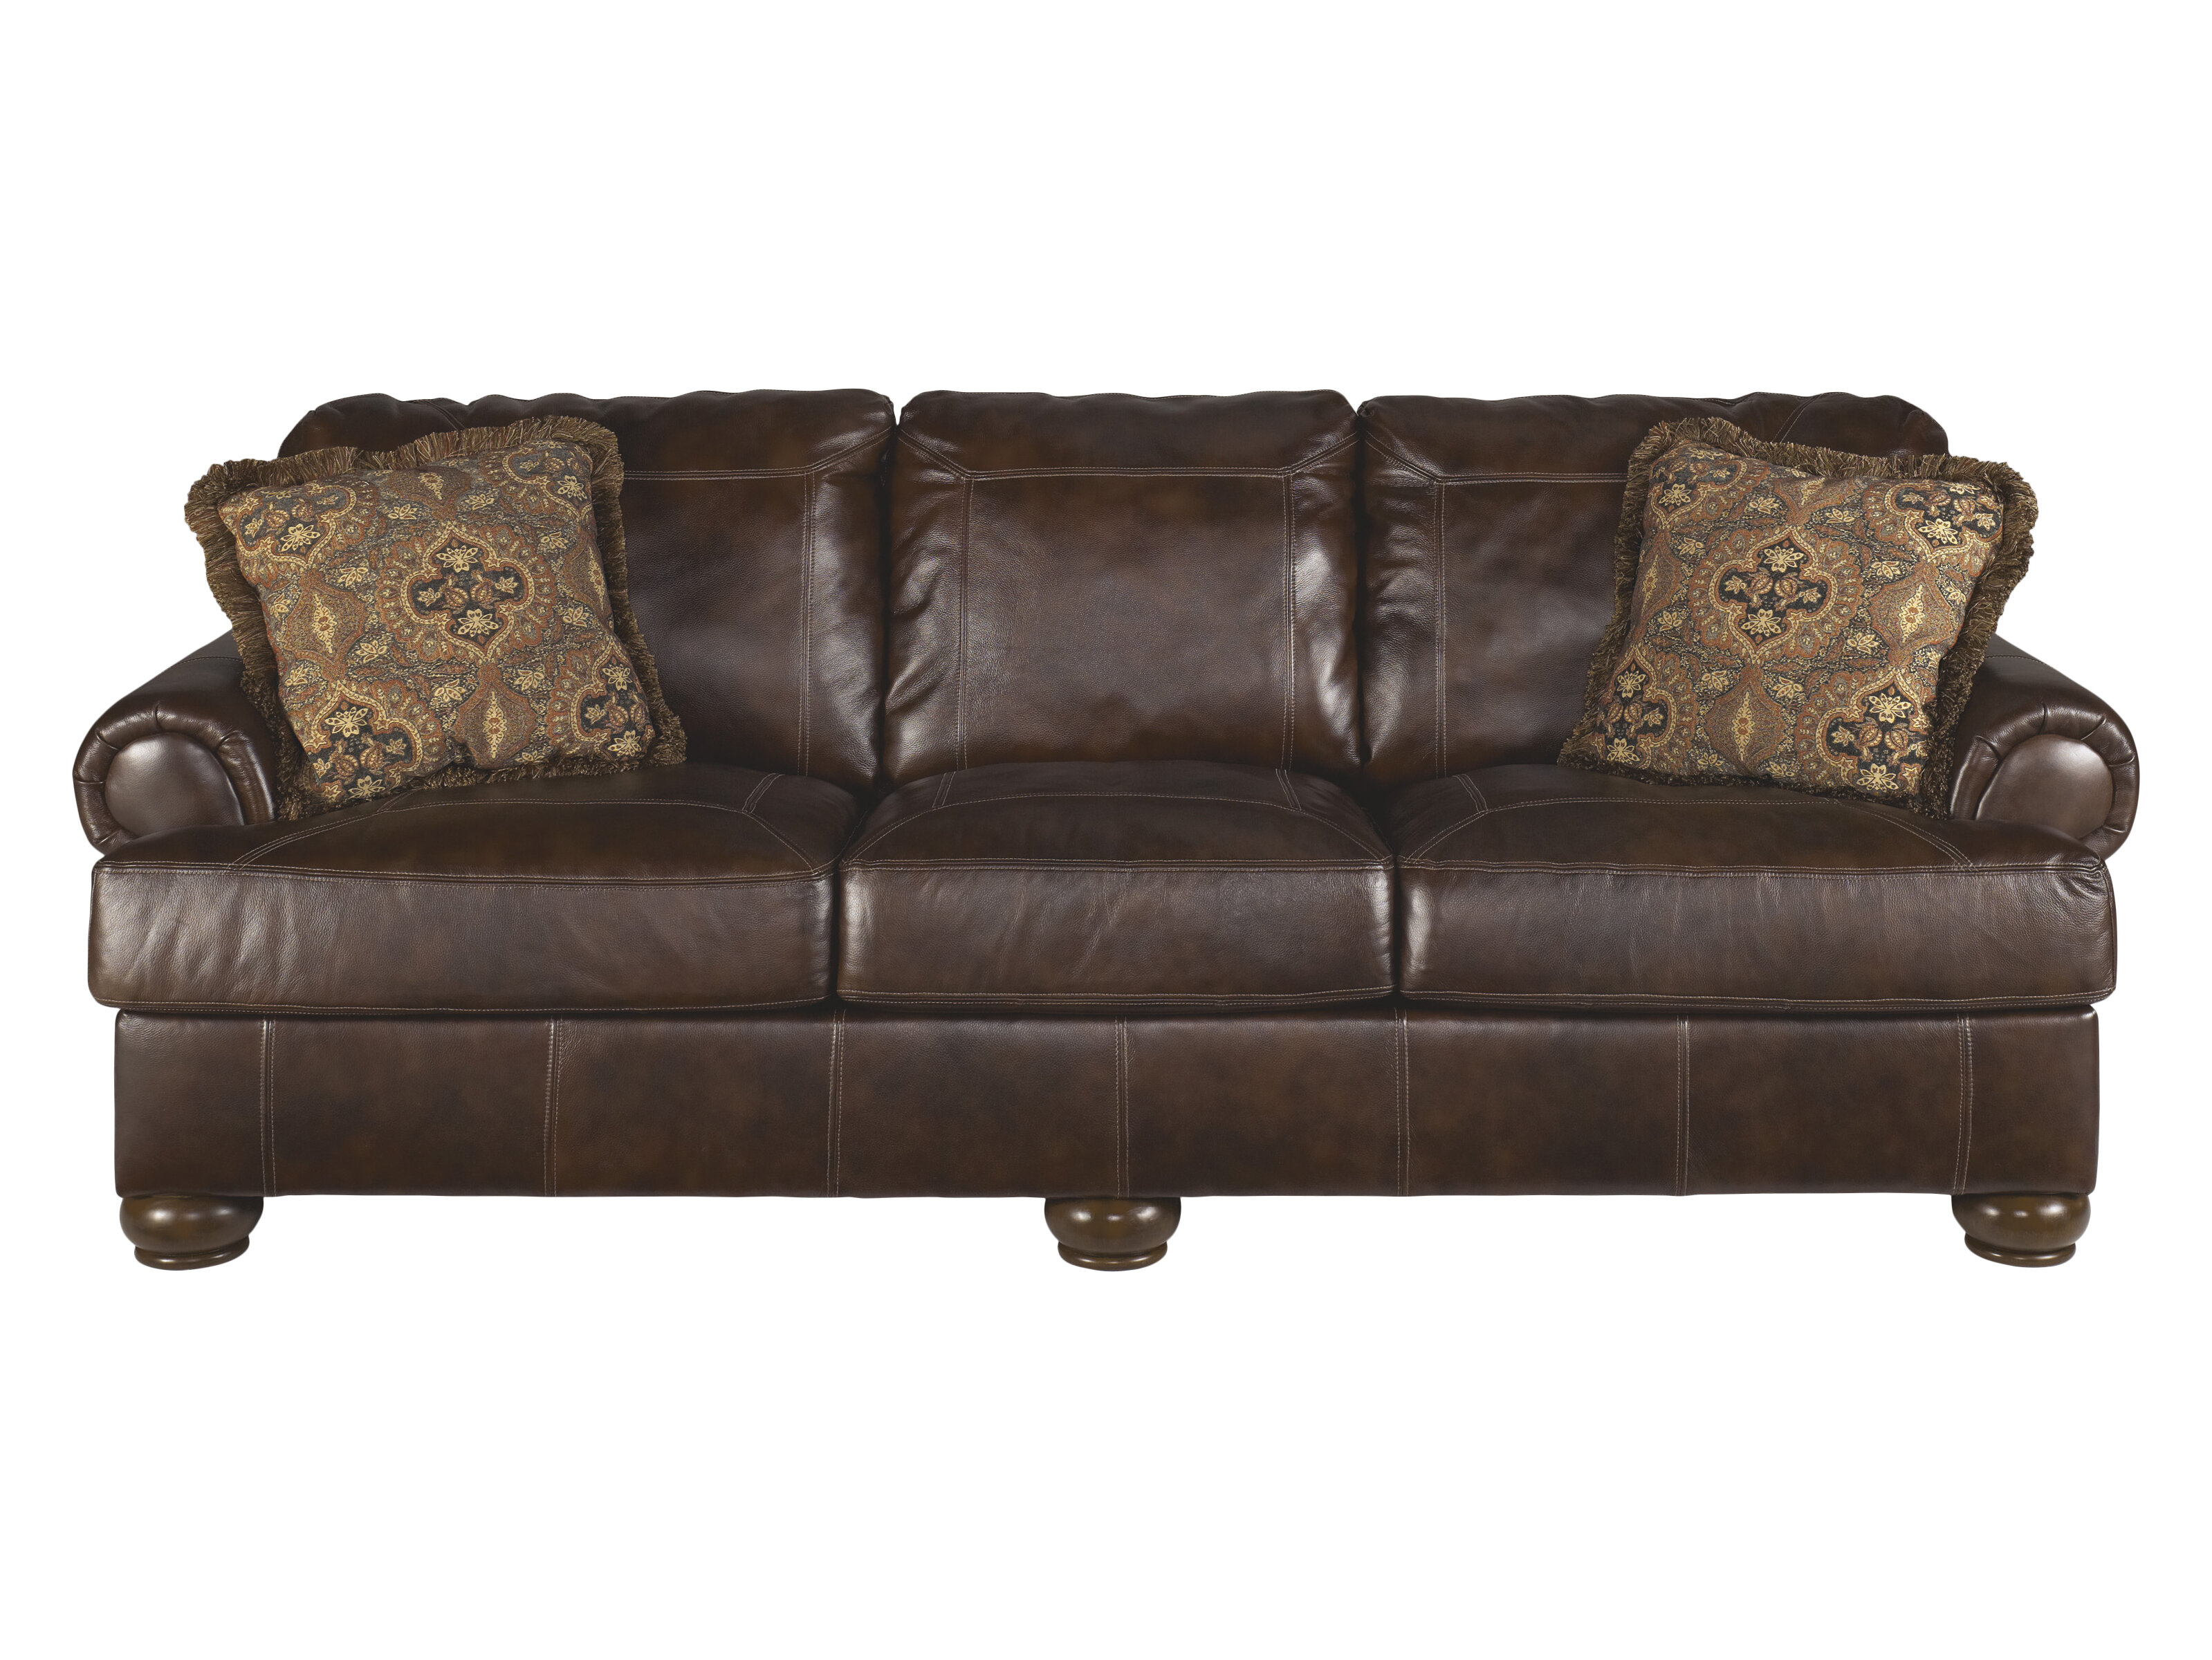 Darby Home Co Bannister Leather Sofa U0026 Reviews   Wayfair